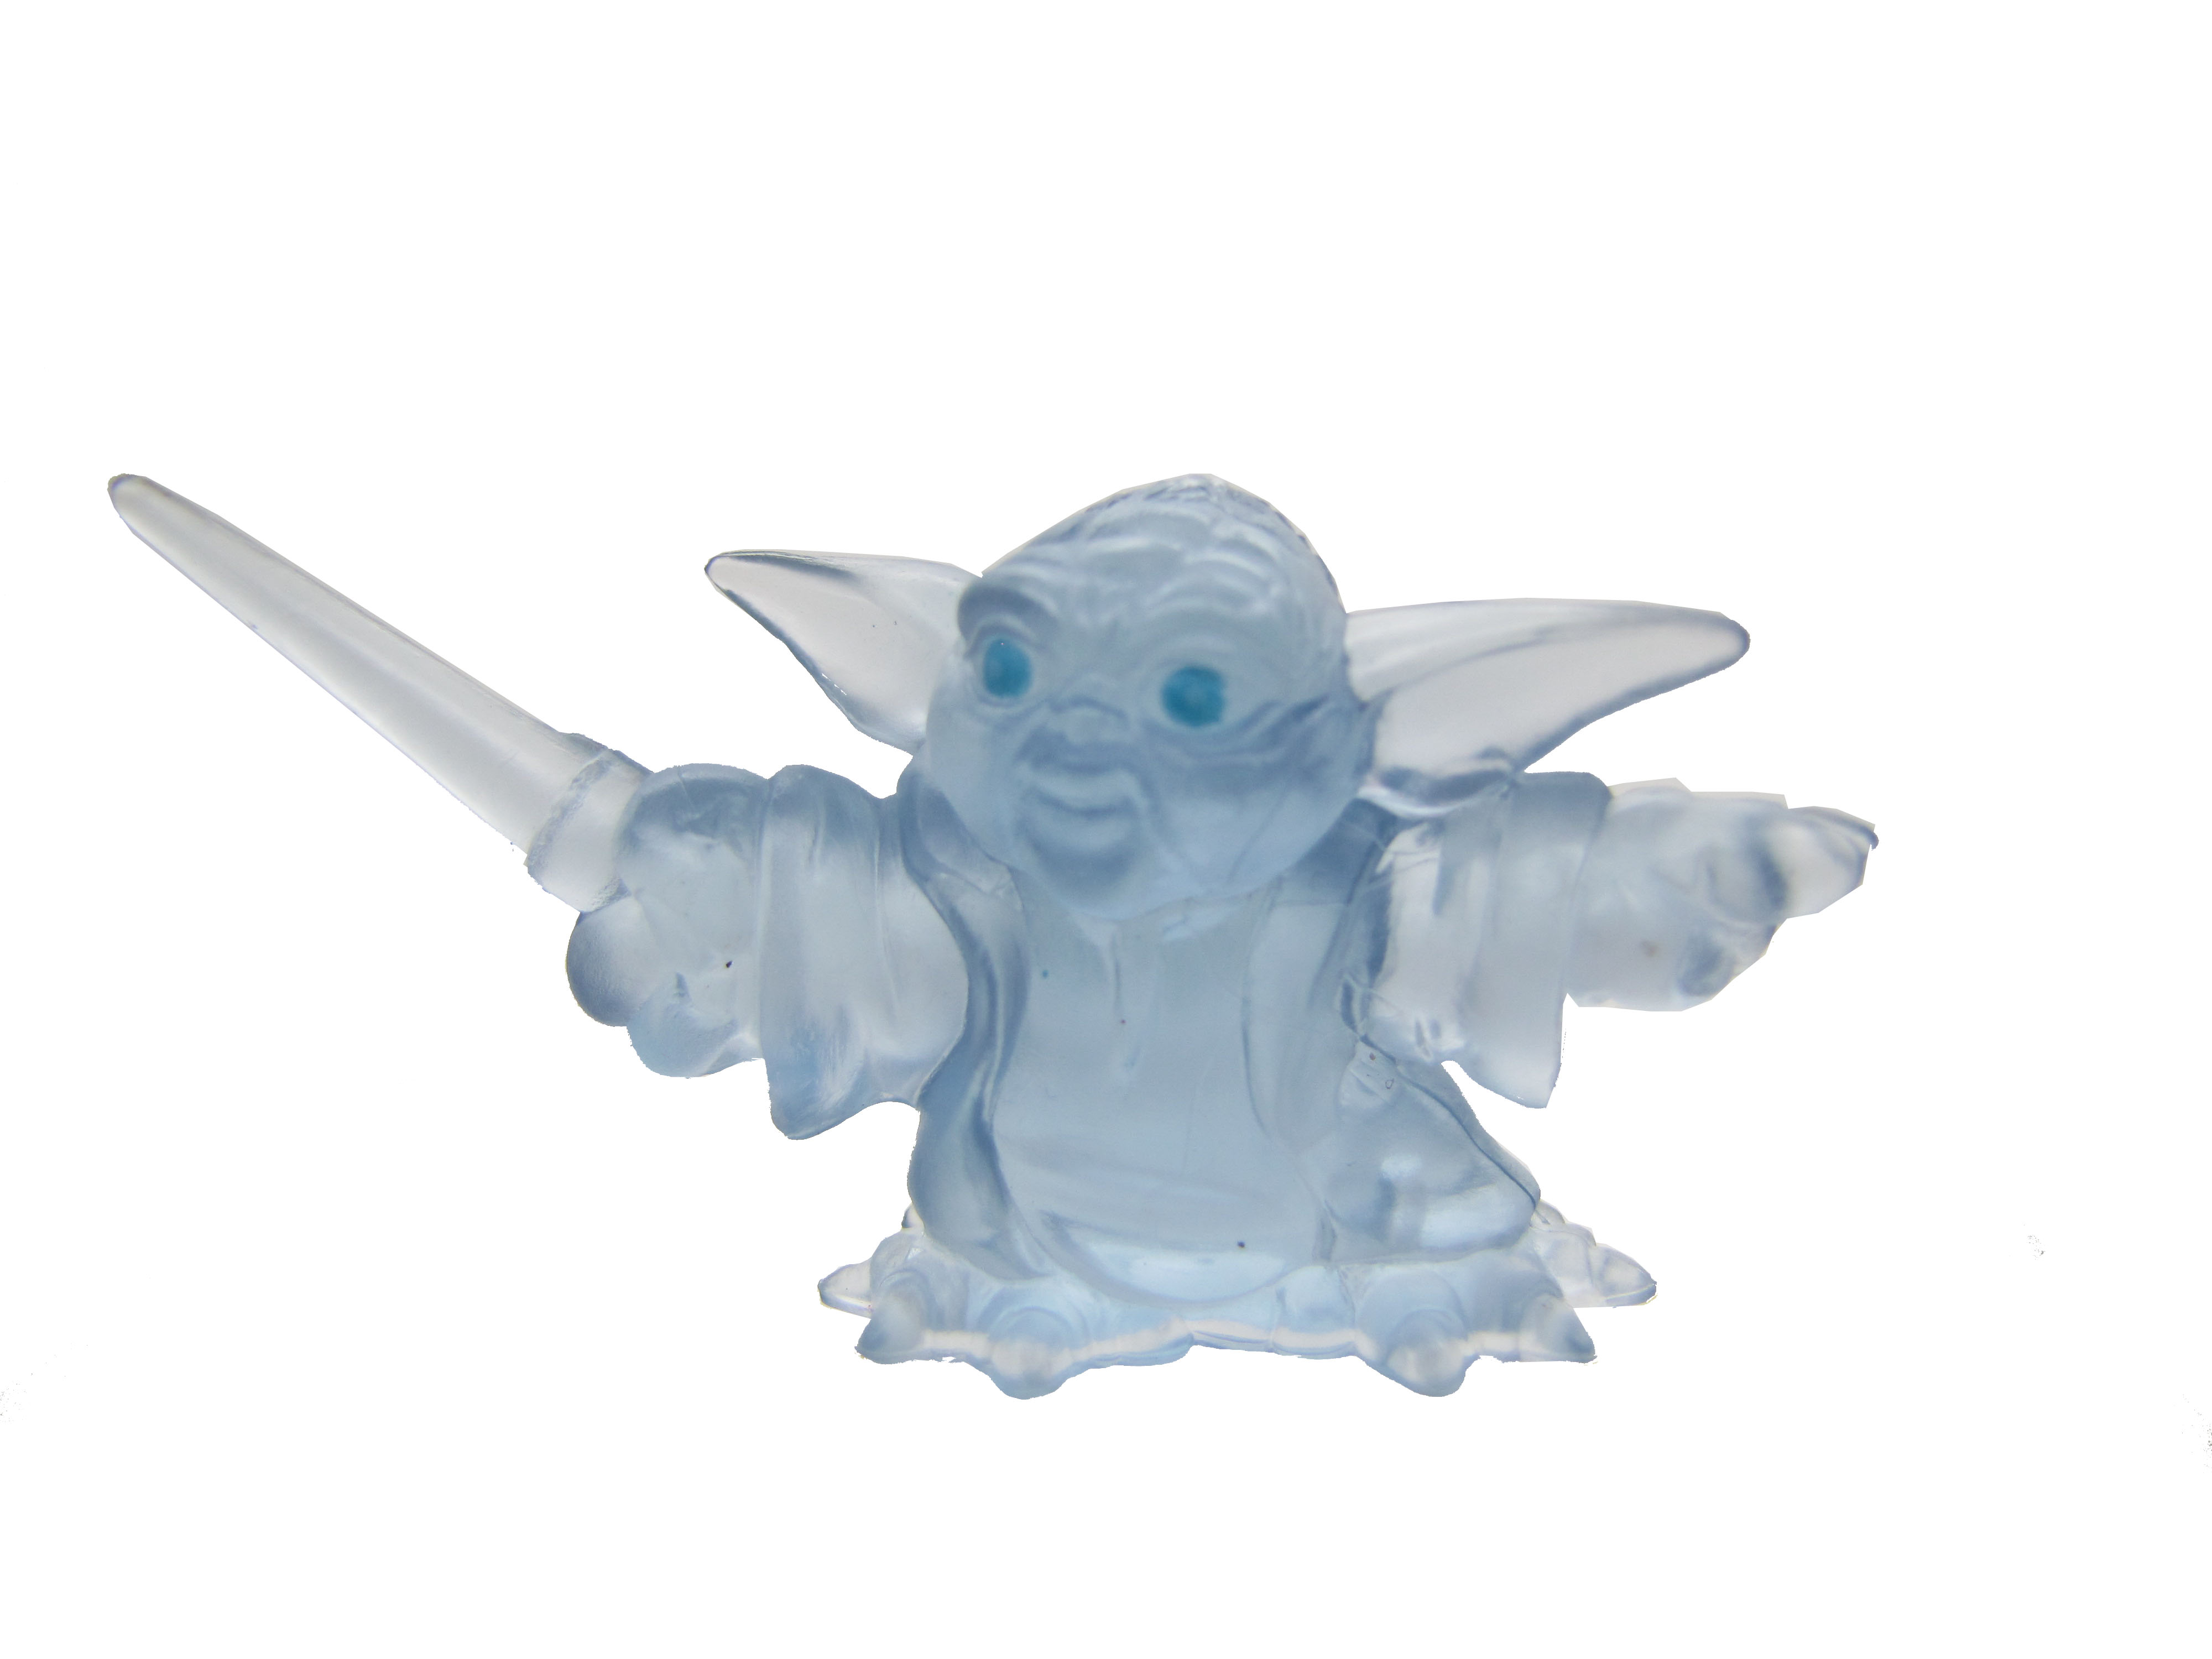 Star Wars Galactic Heroes Spirit Yoda Endor Celebration